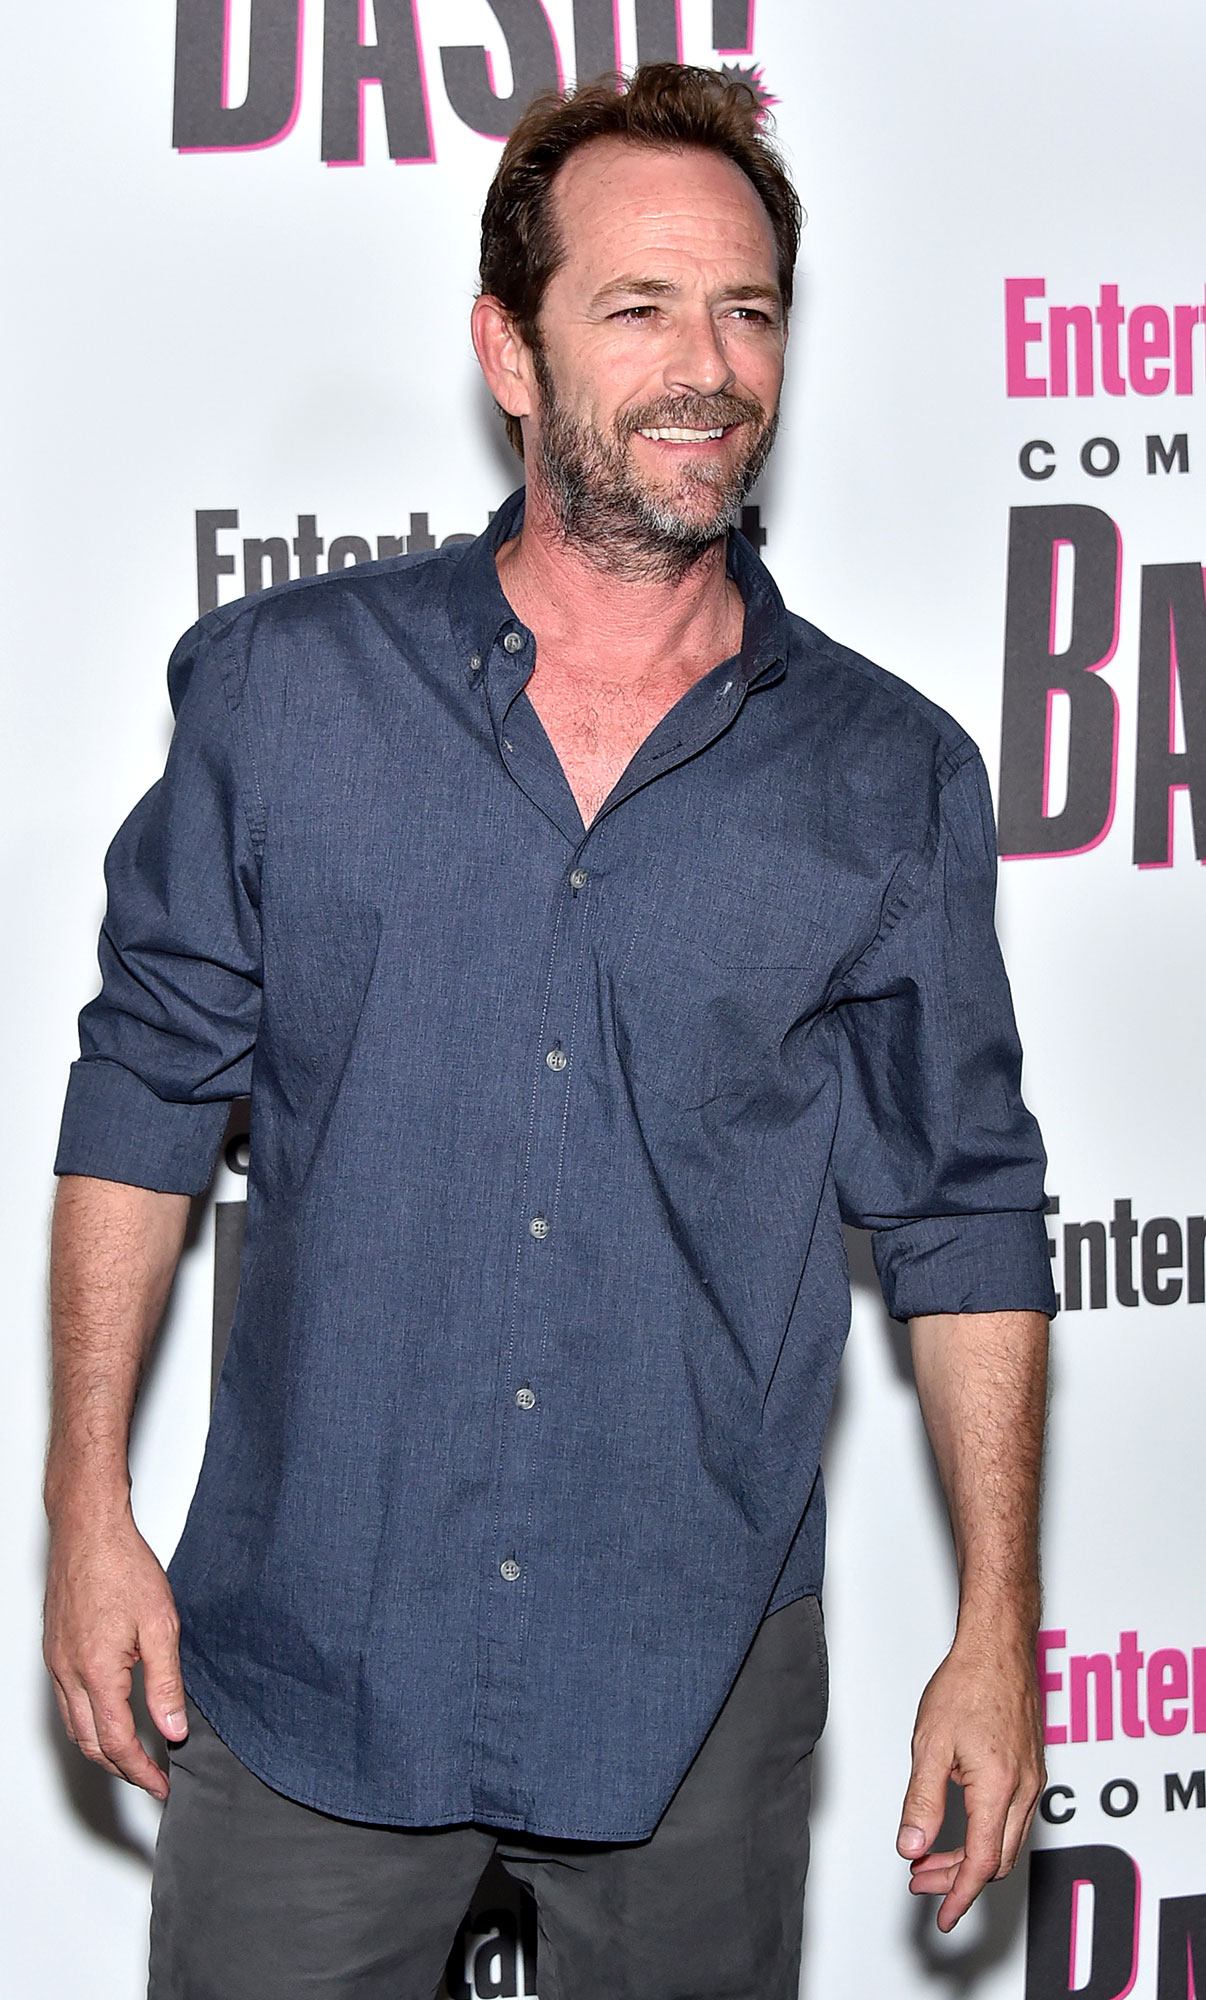 Luke Perry's Family Made Difficult Decision to Take Him Off Life Support: It Was Devastating - Luke Perry attends Entertainment Weekly's Comic-Con Bash at FLOAT at Hard Rock Hotel San Diego on July 21, 2018.